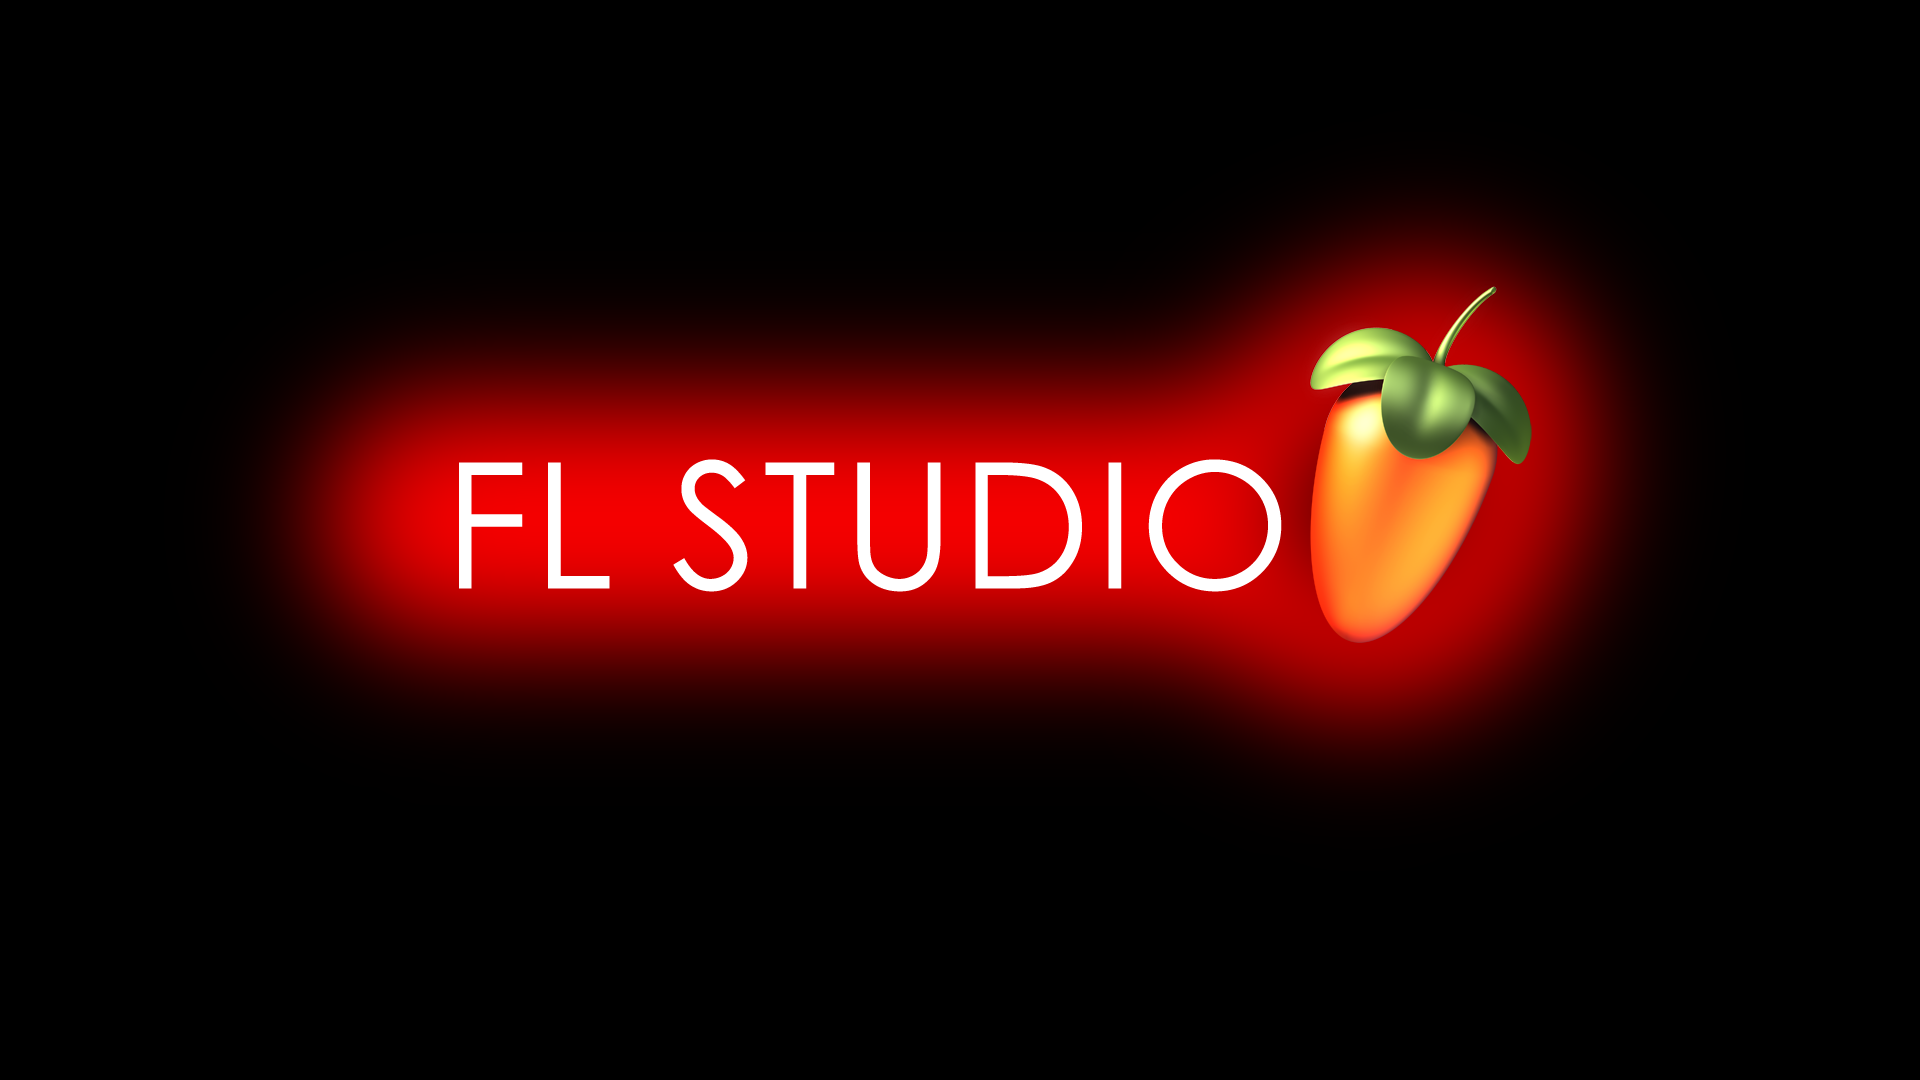 Fl Studio Glow Red By Ozicks On Deviantart